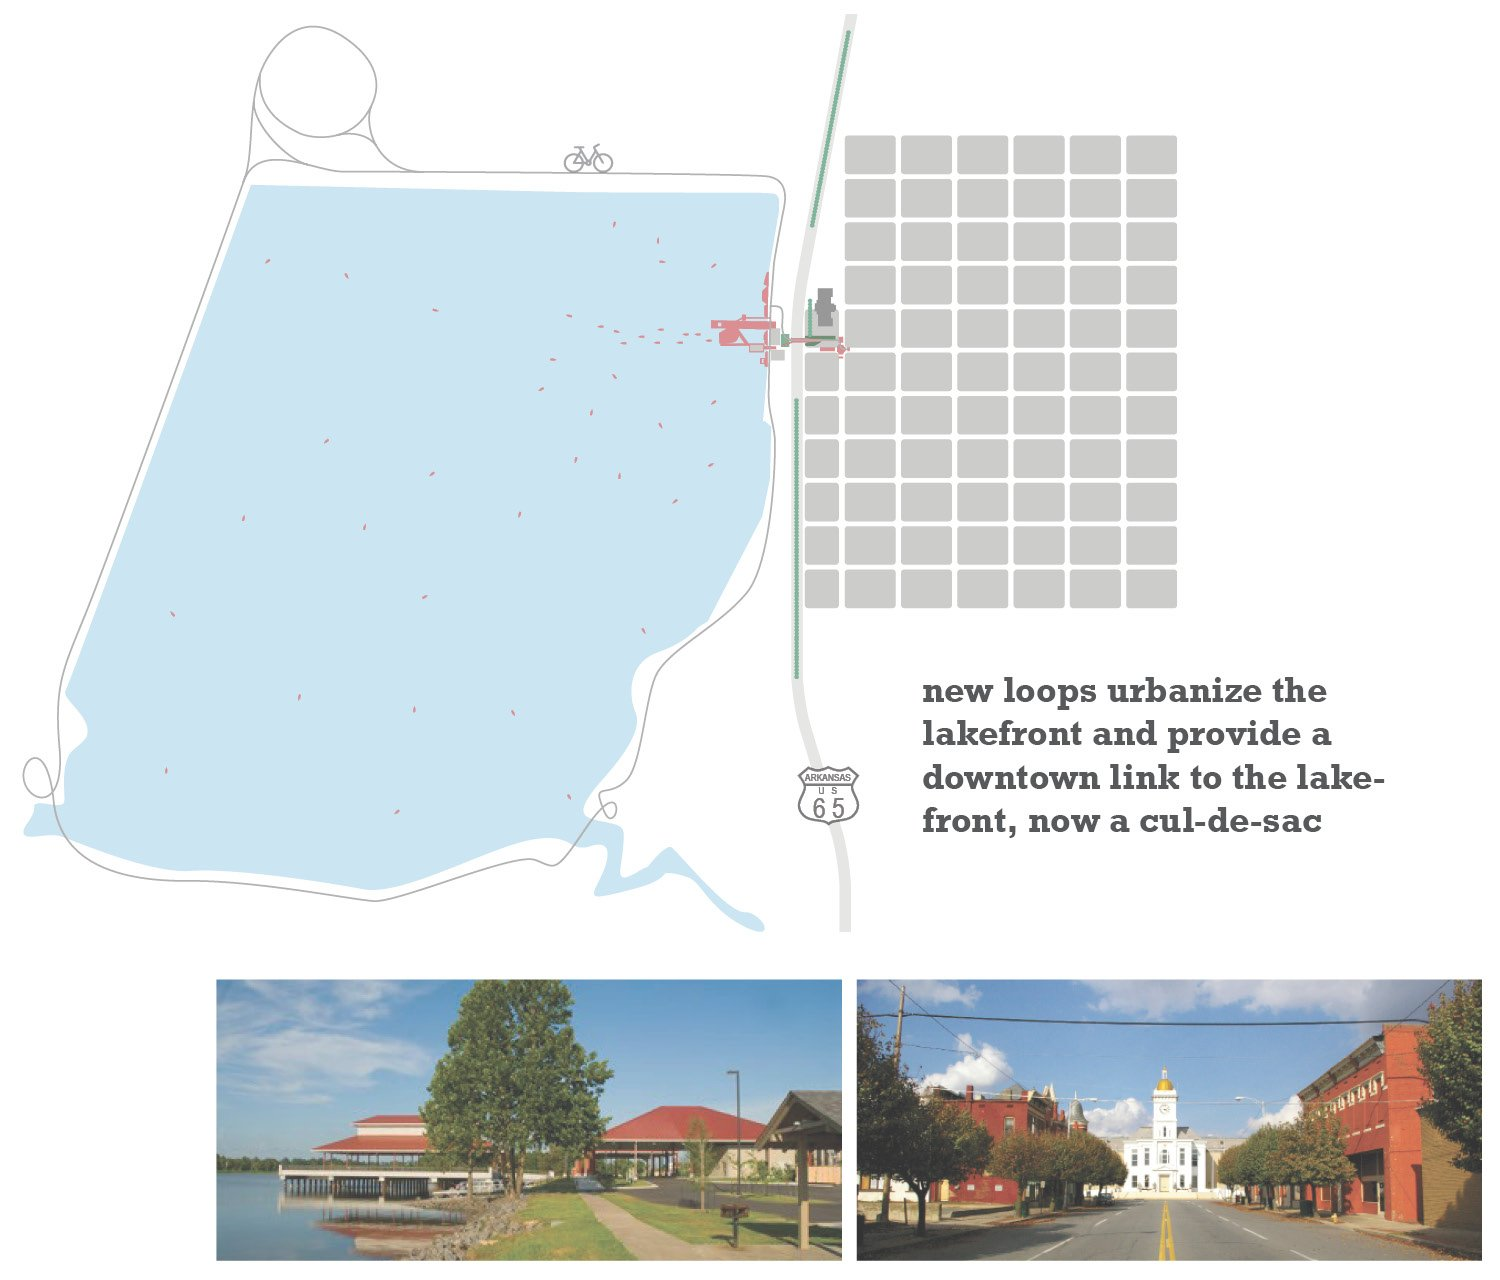 new loops urbanize the lakefront and provide a downtown link to the lakefront, now a cul-de-sac University of Arkansas Community Design Center}